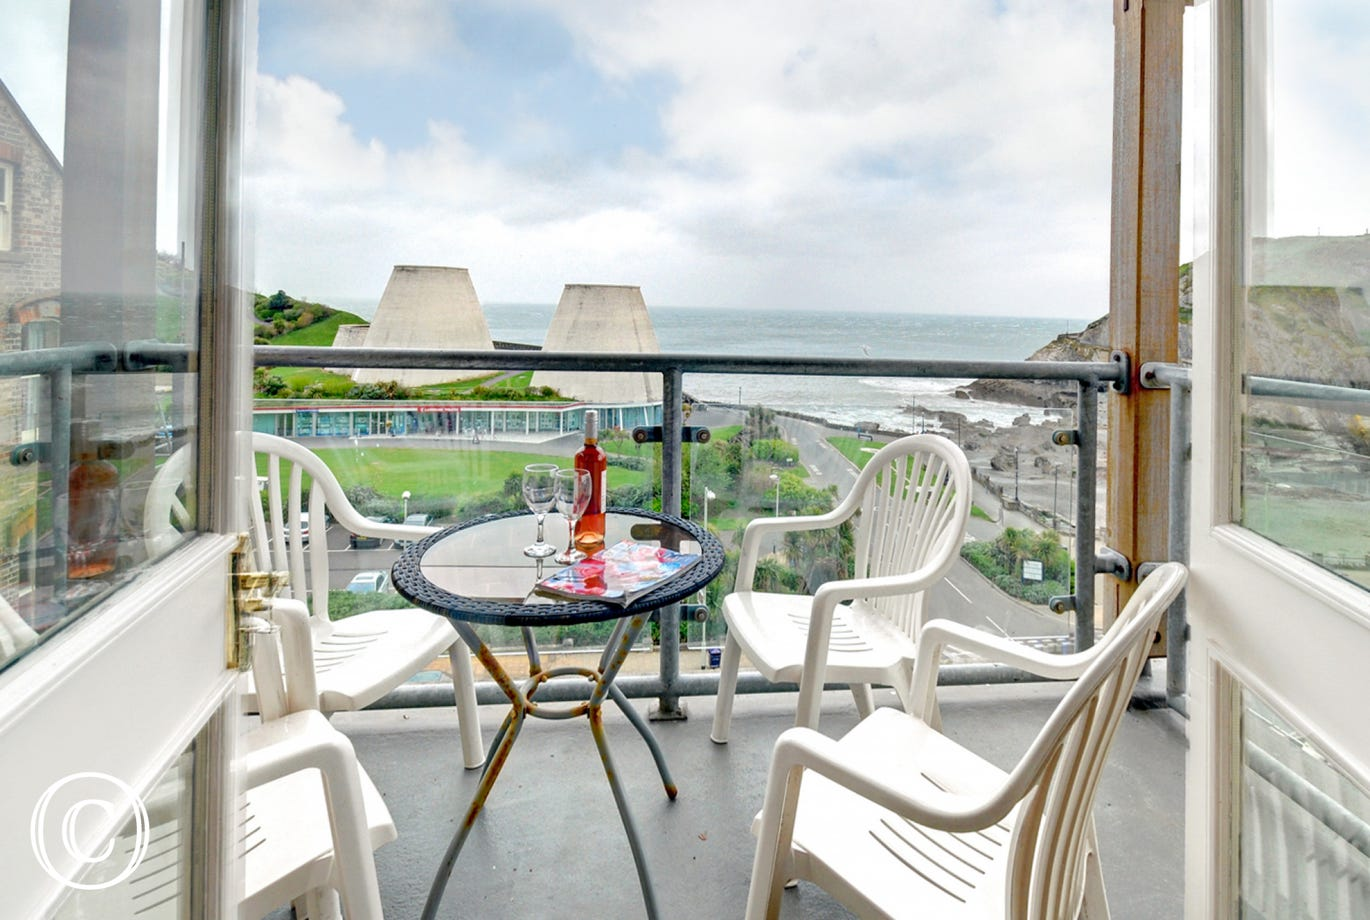 Patio doors open onto the balcony area with a fantastic sea view and covered canopy, a real bonus